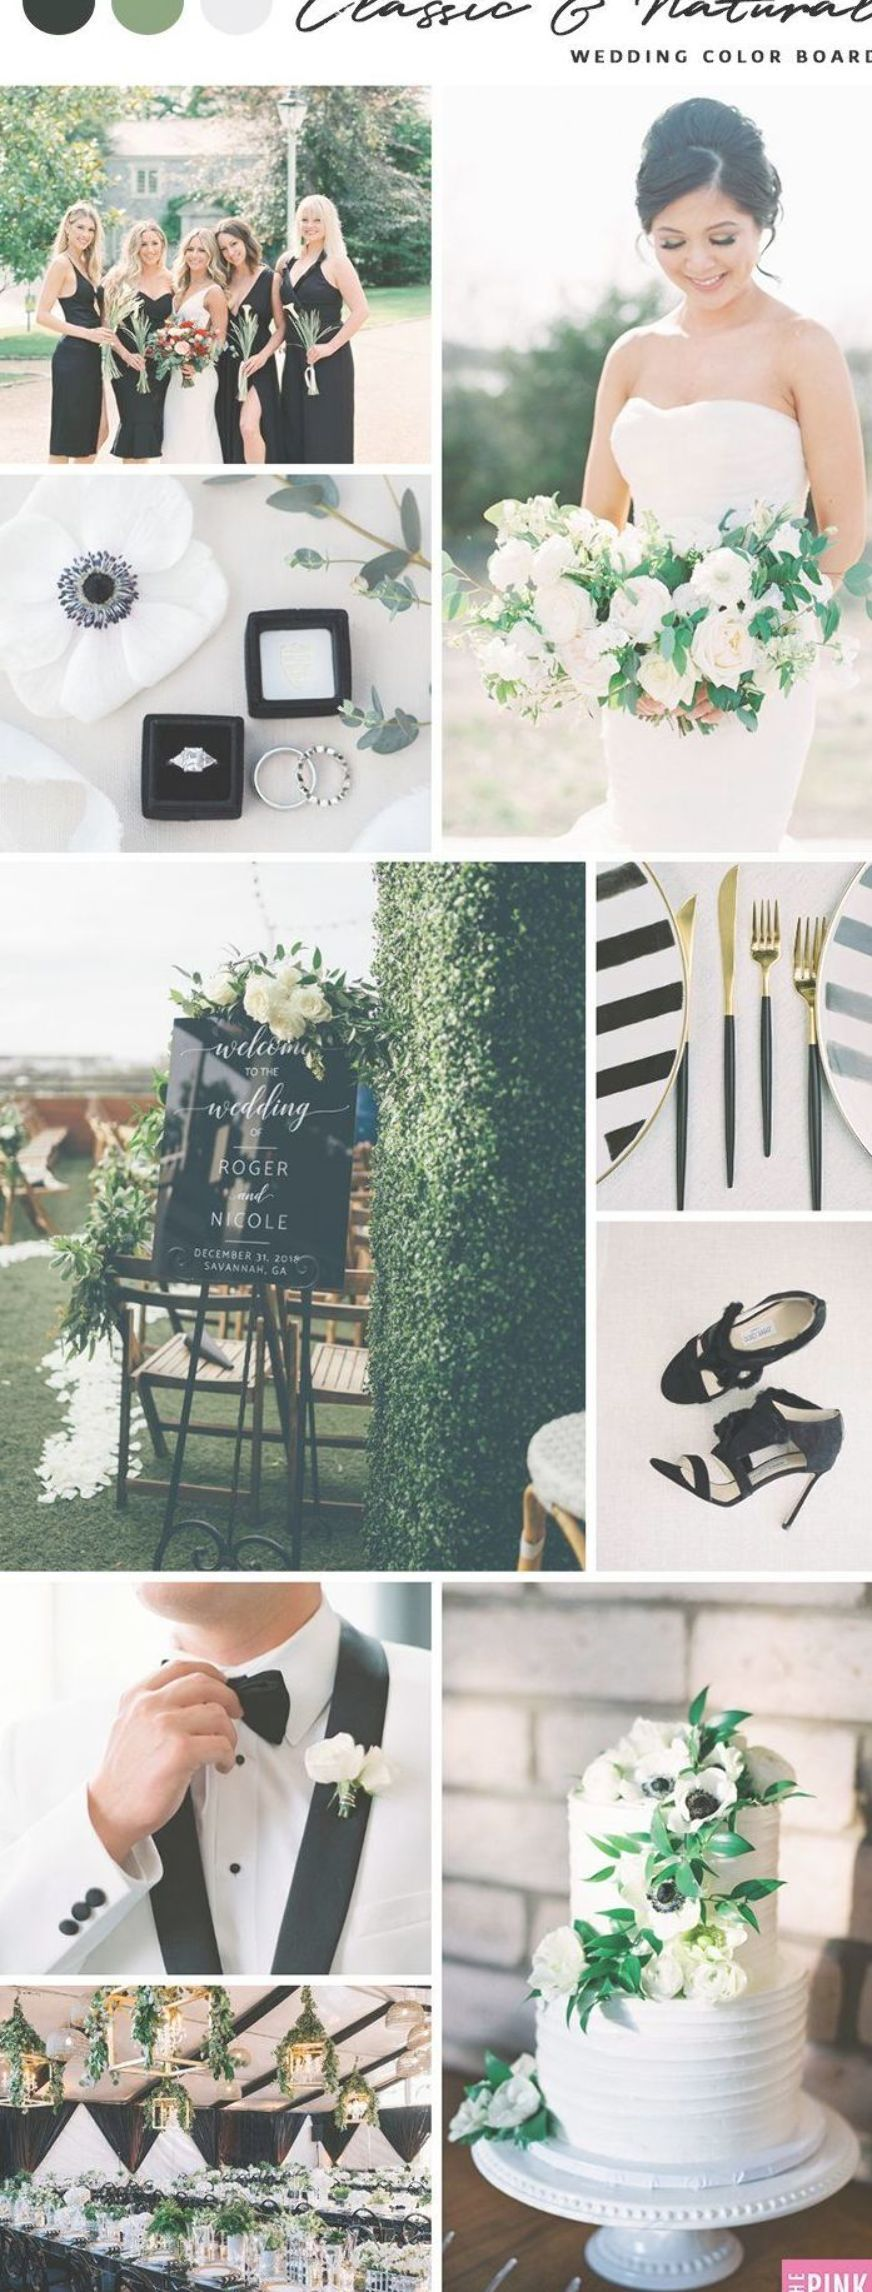 Classic & Natural Wedding Color Board Inspiration   Black, White, Olive Green Wedding Colors   The Pink Bride®️️️️️️️